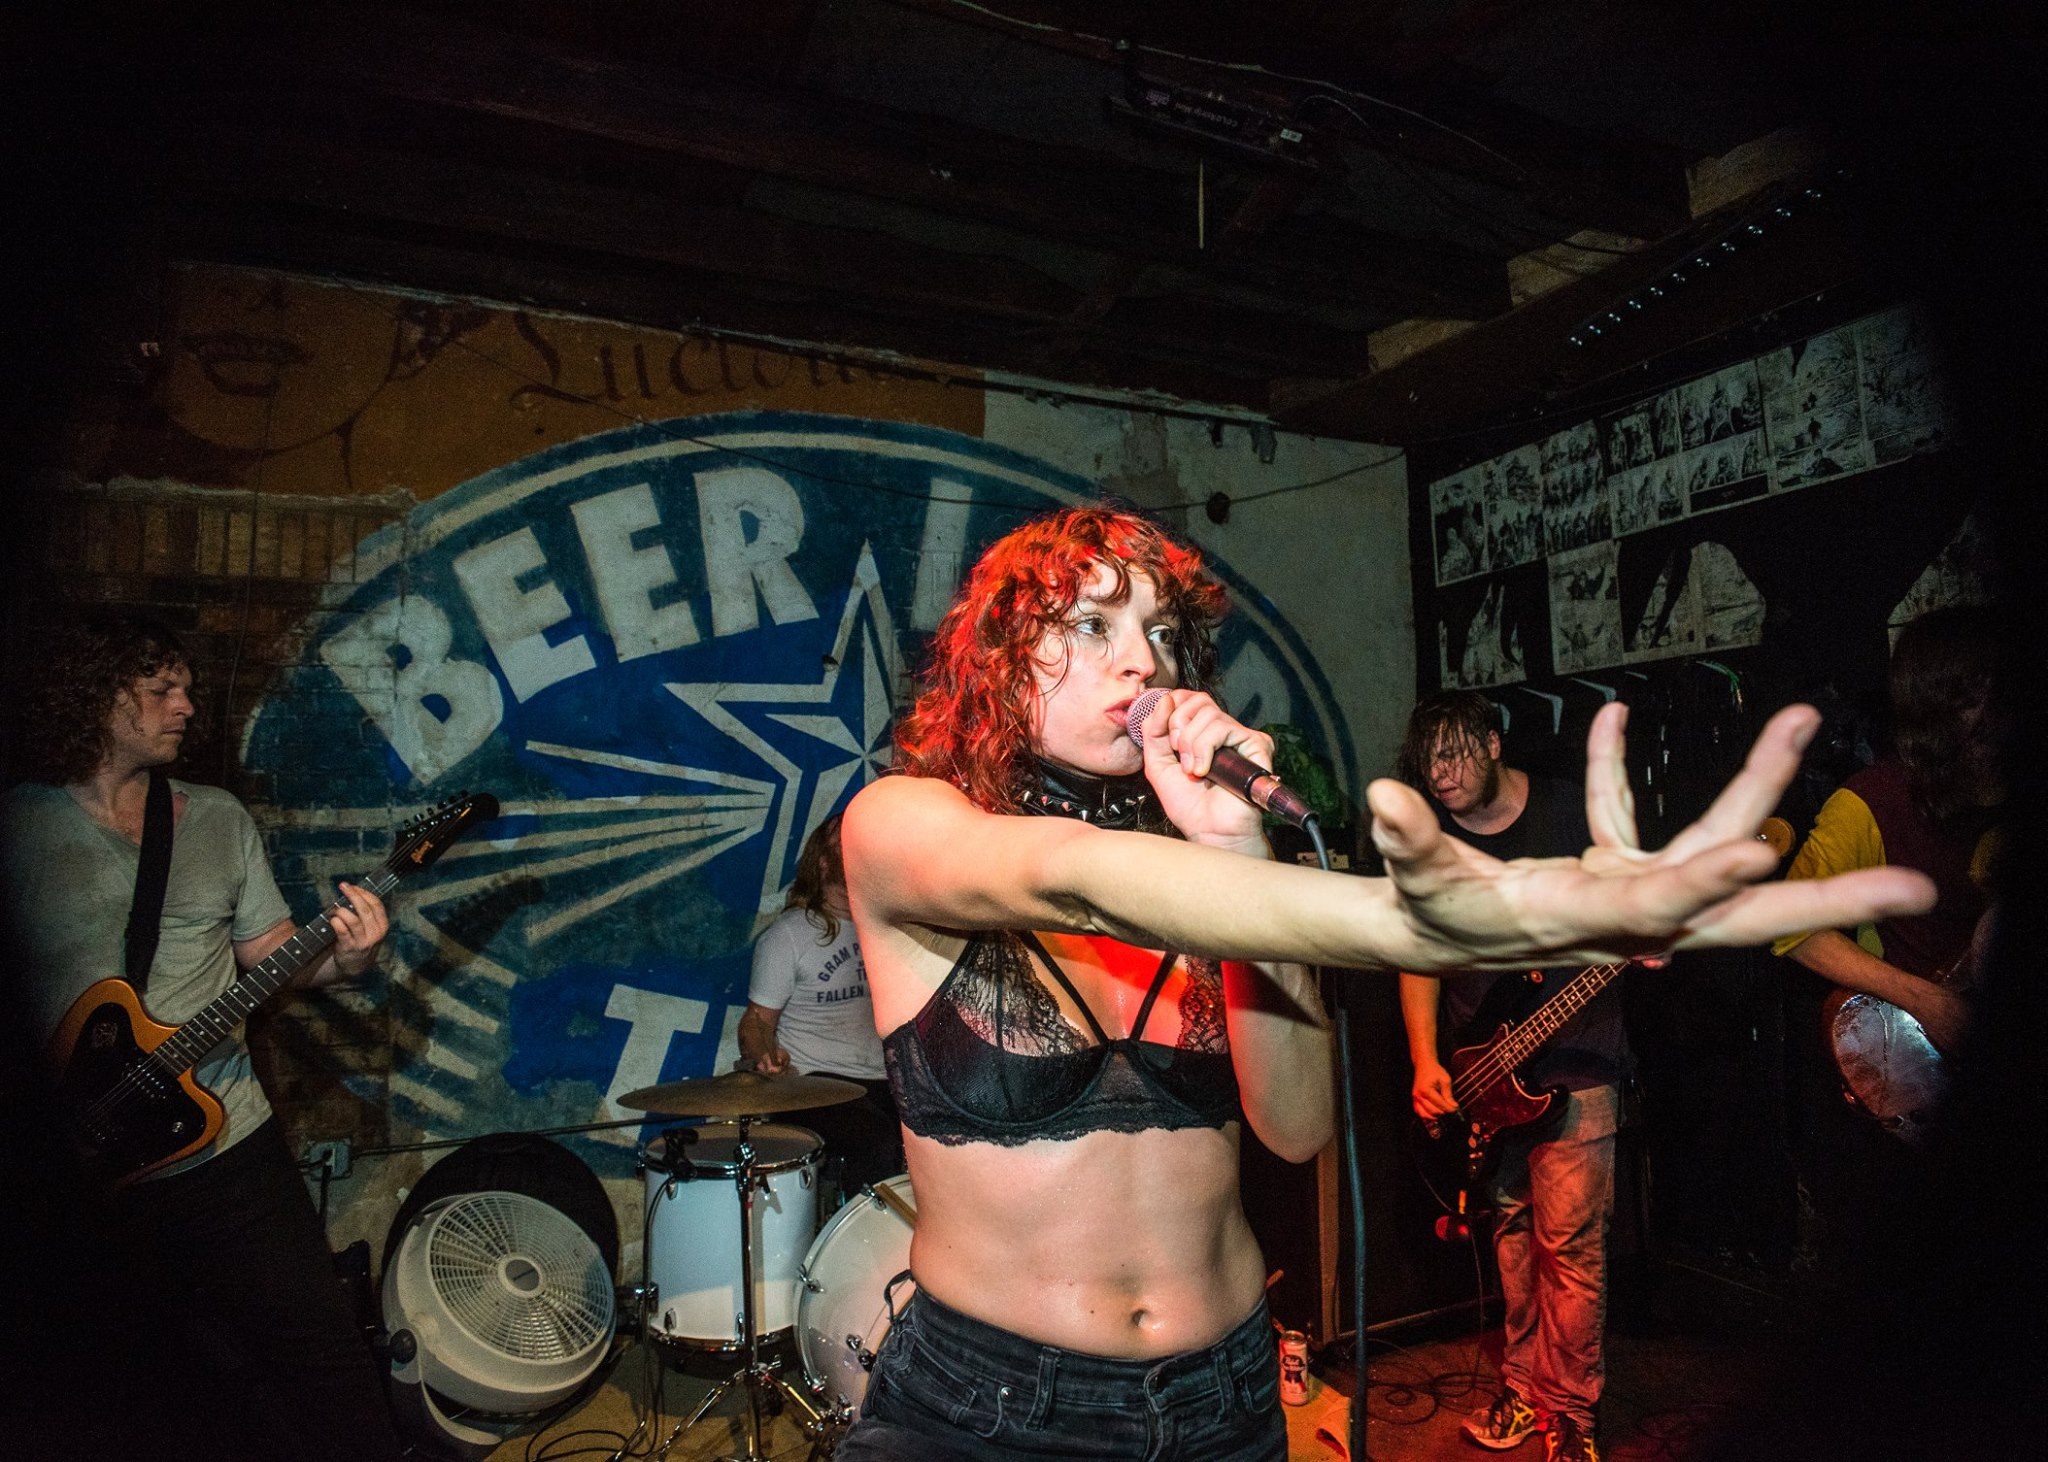 A performance at Beerland